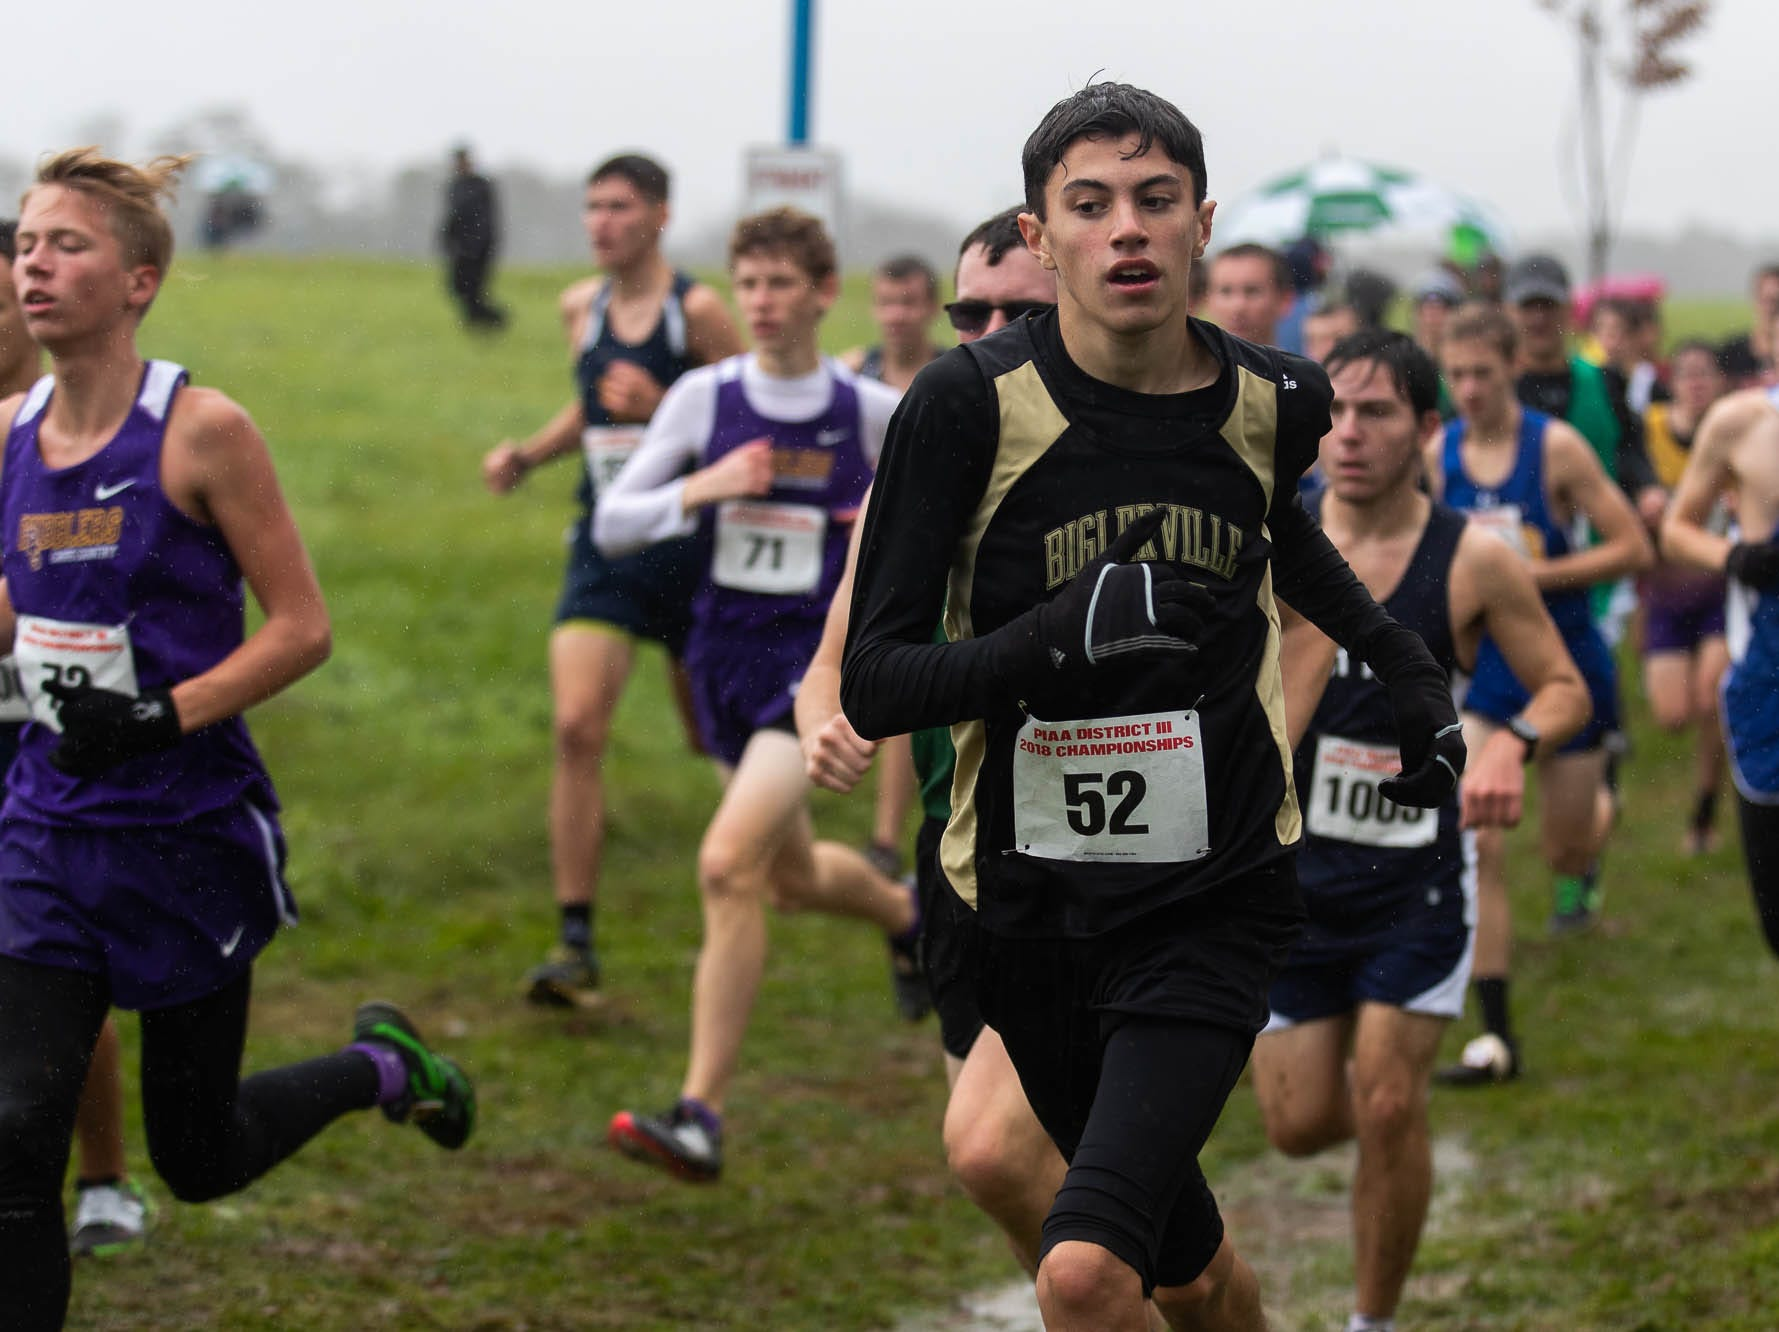 Biglerville's Kalani Crum (52) races in the Boys AA race during the PIAA District III Cross Country Championship, Saturday, Oct. 27, 2018, at Big Spring High School in Newville.